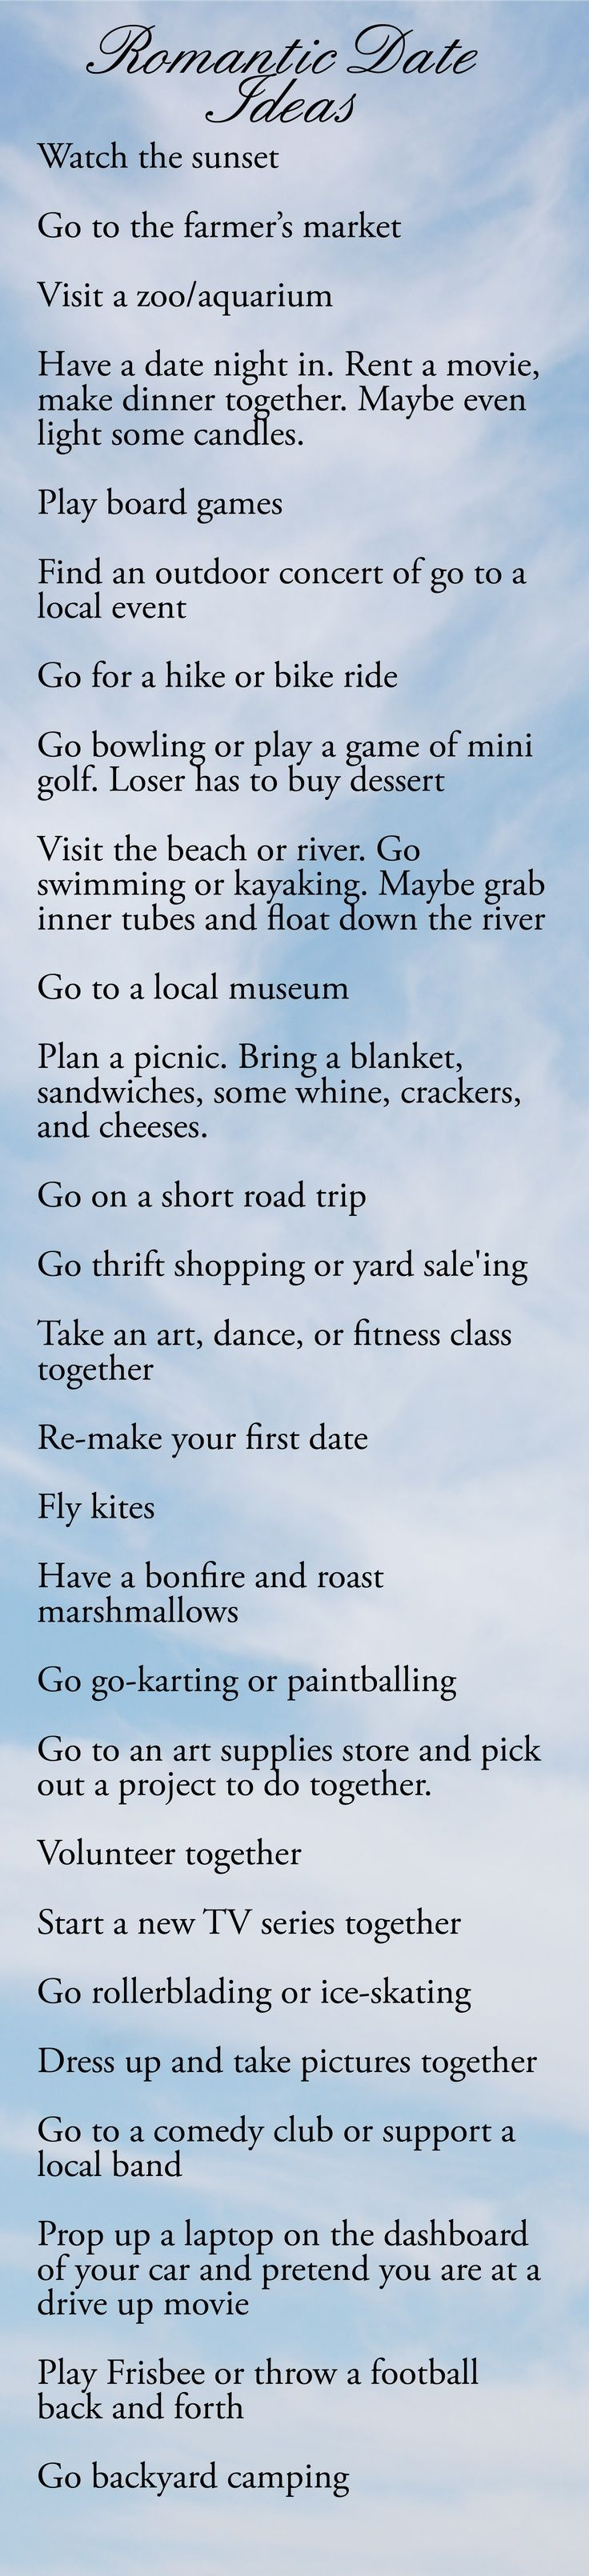 These are some great date ideas that I may have to try. There's always those days when we can't decide on what to do